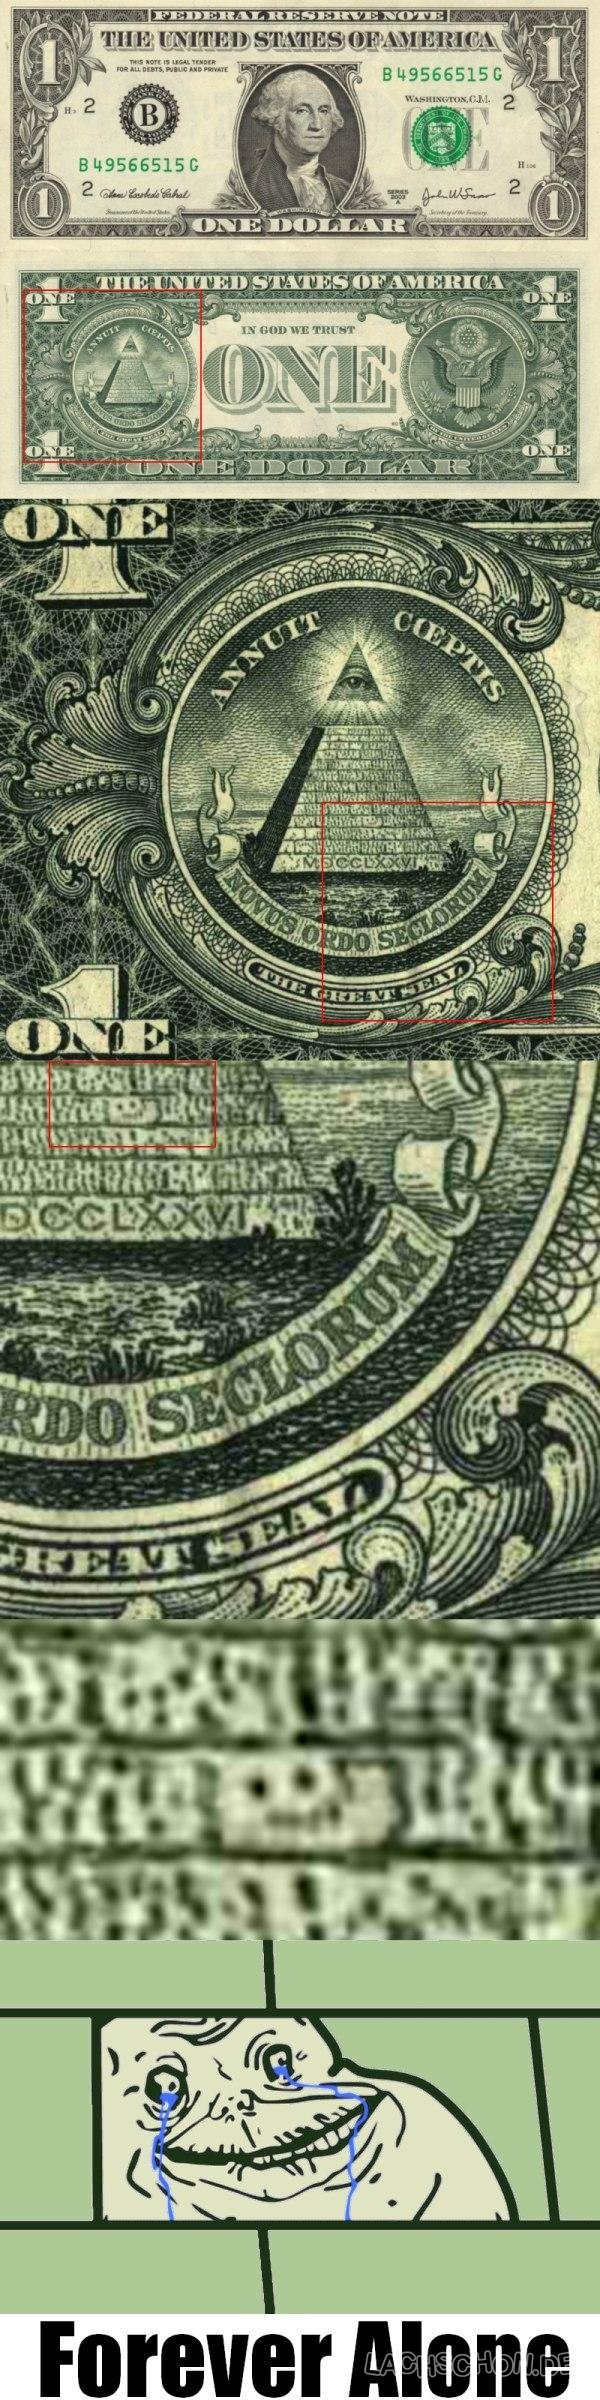 Forever_alone - Dollar Alone